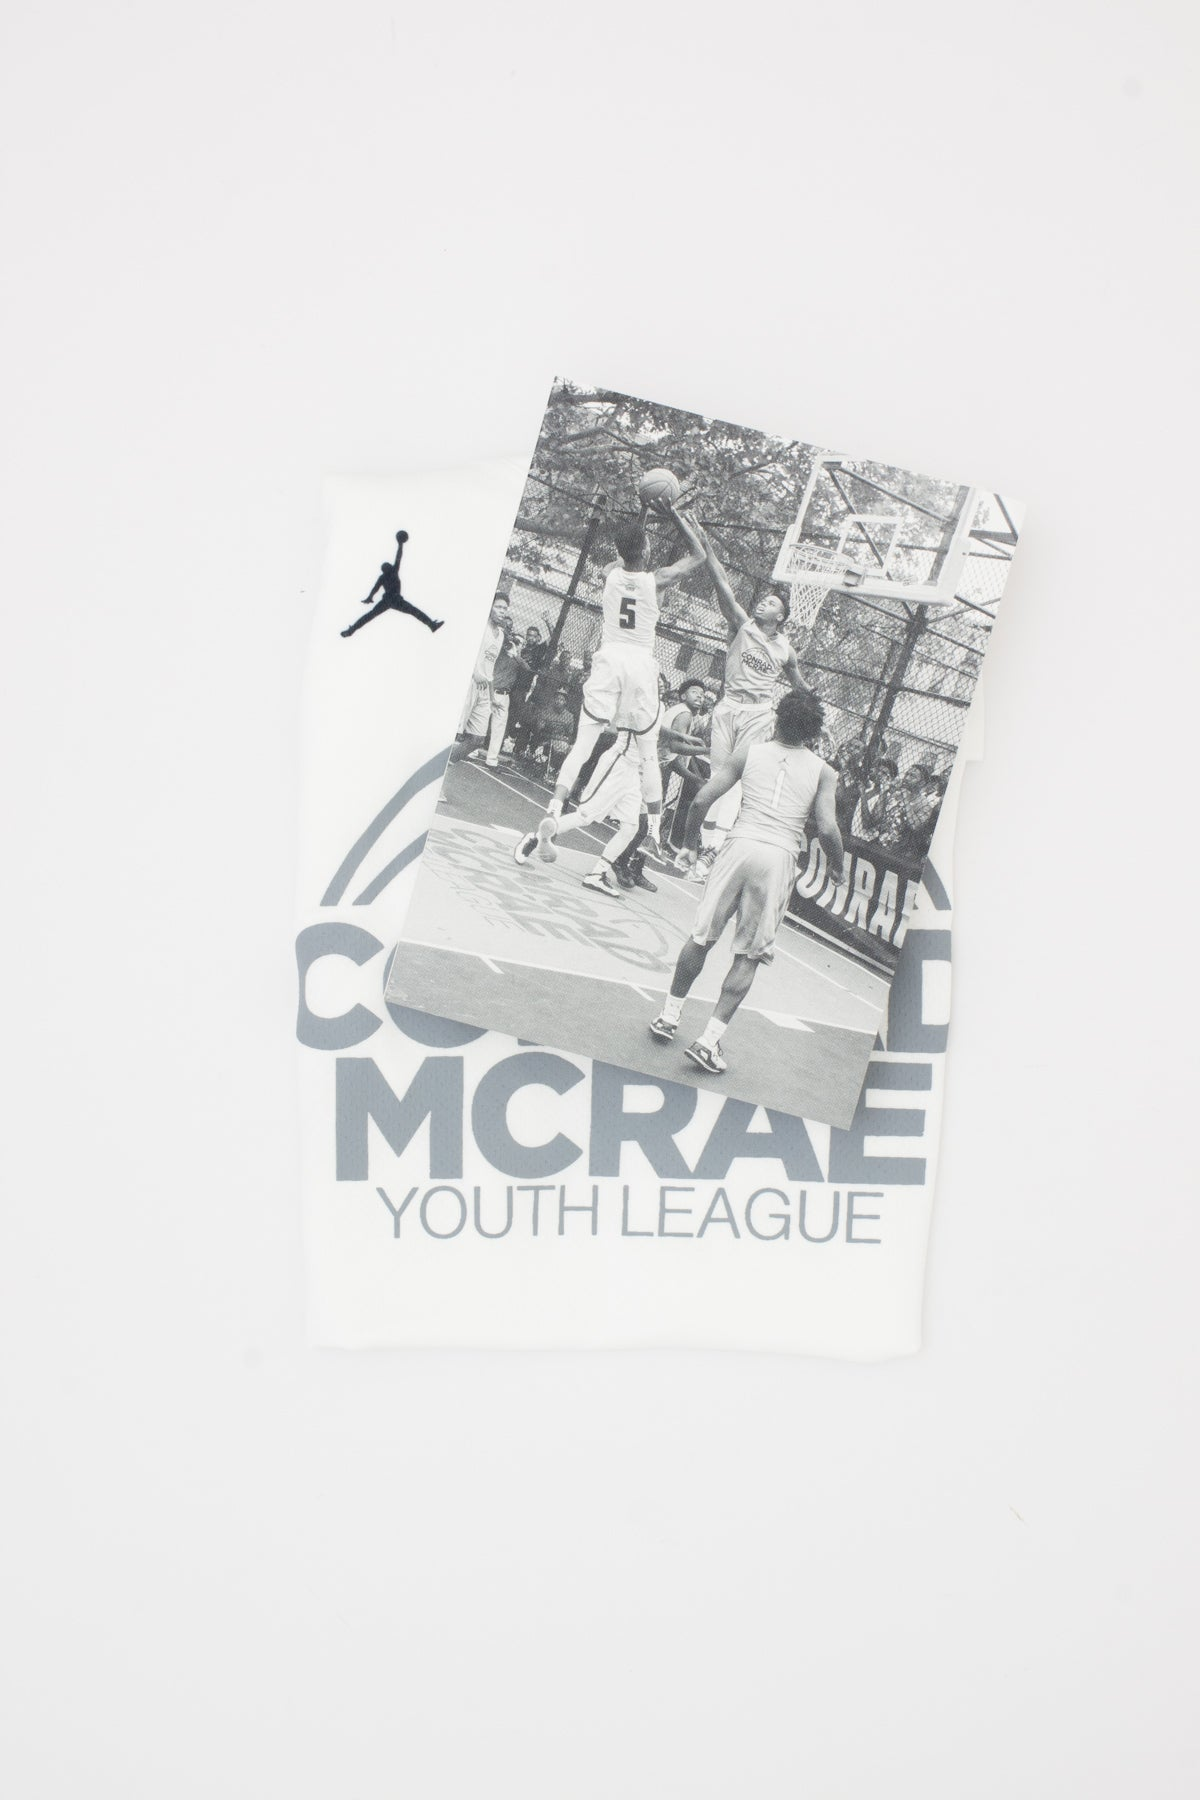 Conrad McRae Youth League Tournament Special Edition - Ari Marcopoulos